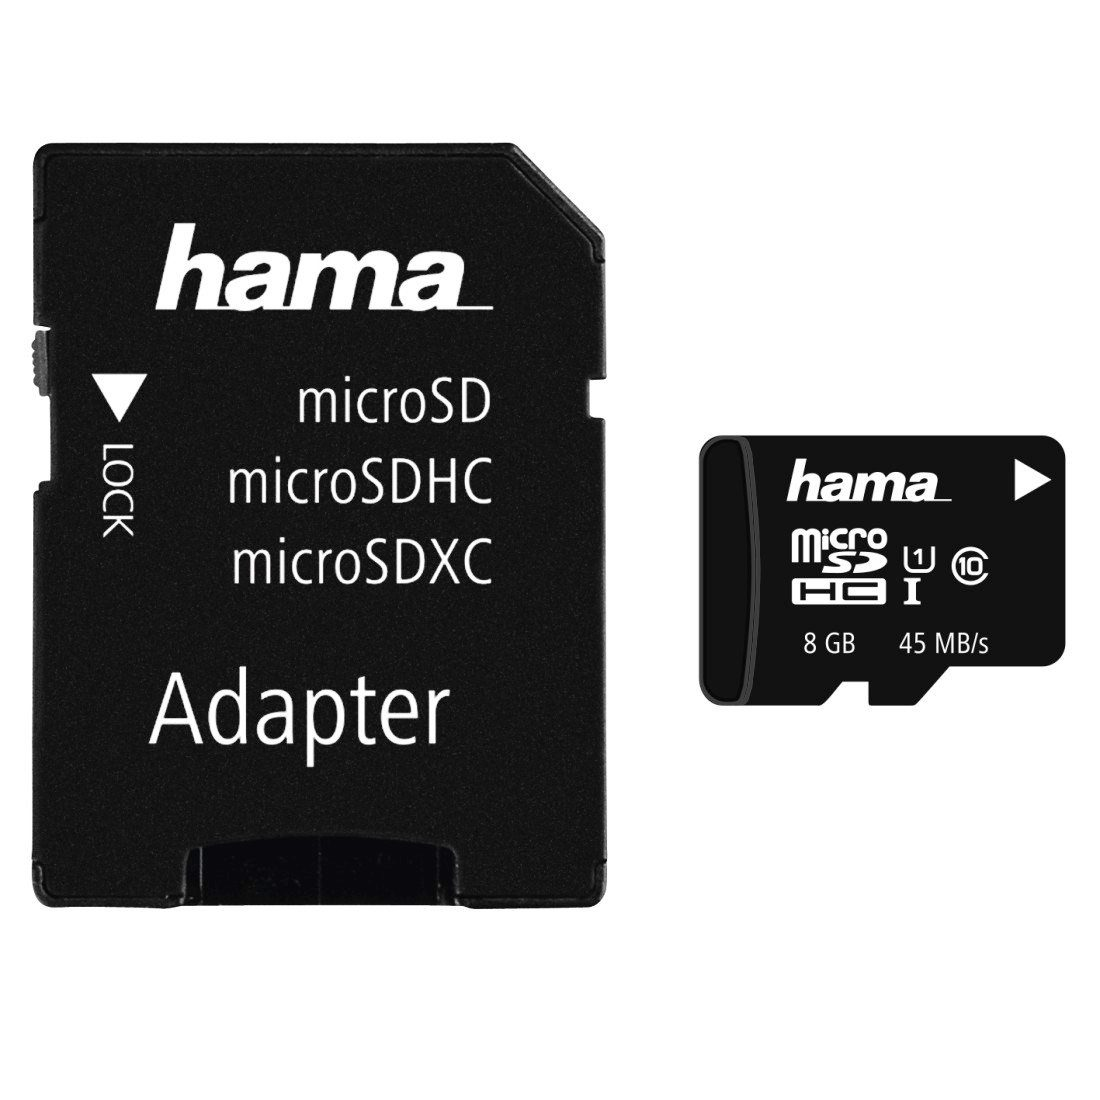 Hama microSDHC 8GB Class 10 UHS-I 45MB/s + Adapter/Action-Cam